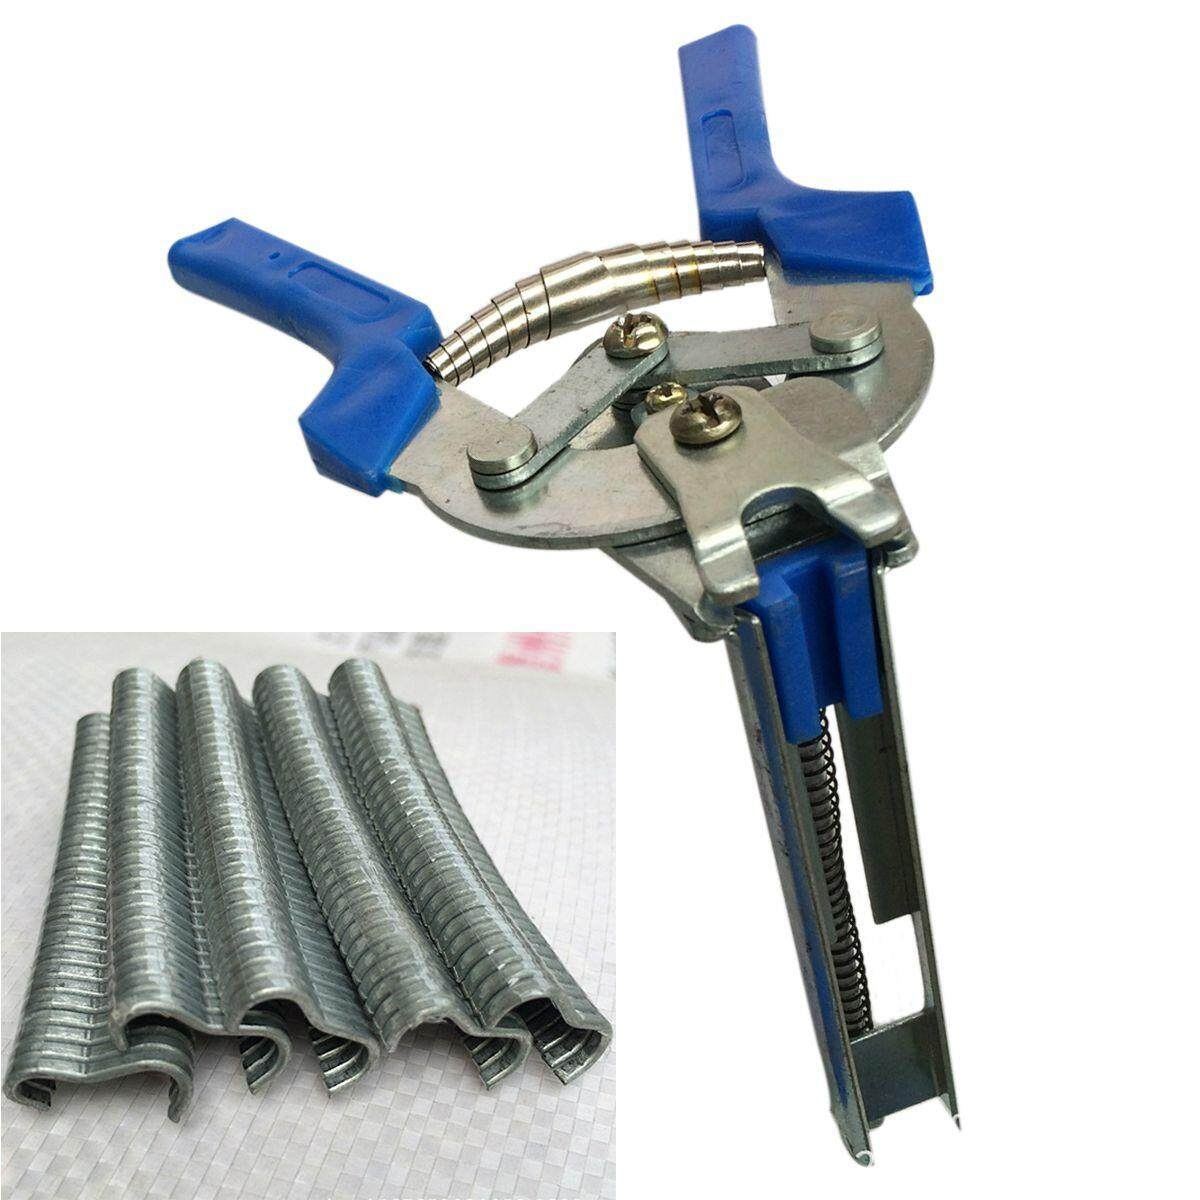 1pc Hog Ring Plier Tool and 600pcs M Clips Chicken Mesh Cage Wire Fencing Crimping Solder Joint Welding Repair Hand Tools